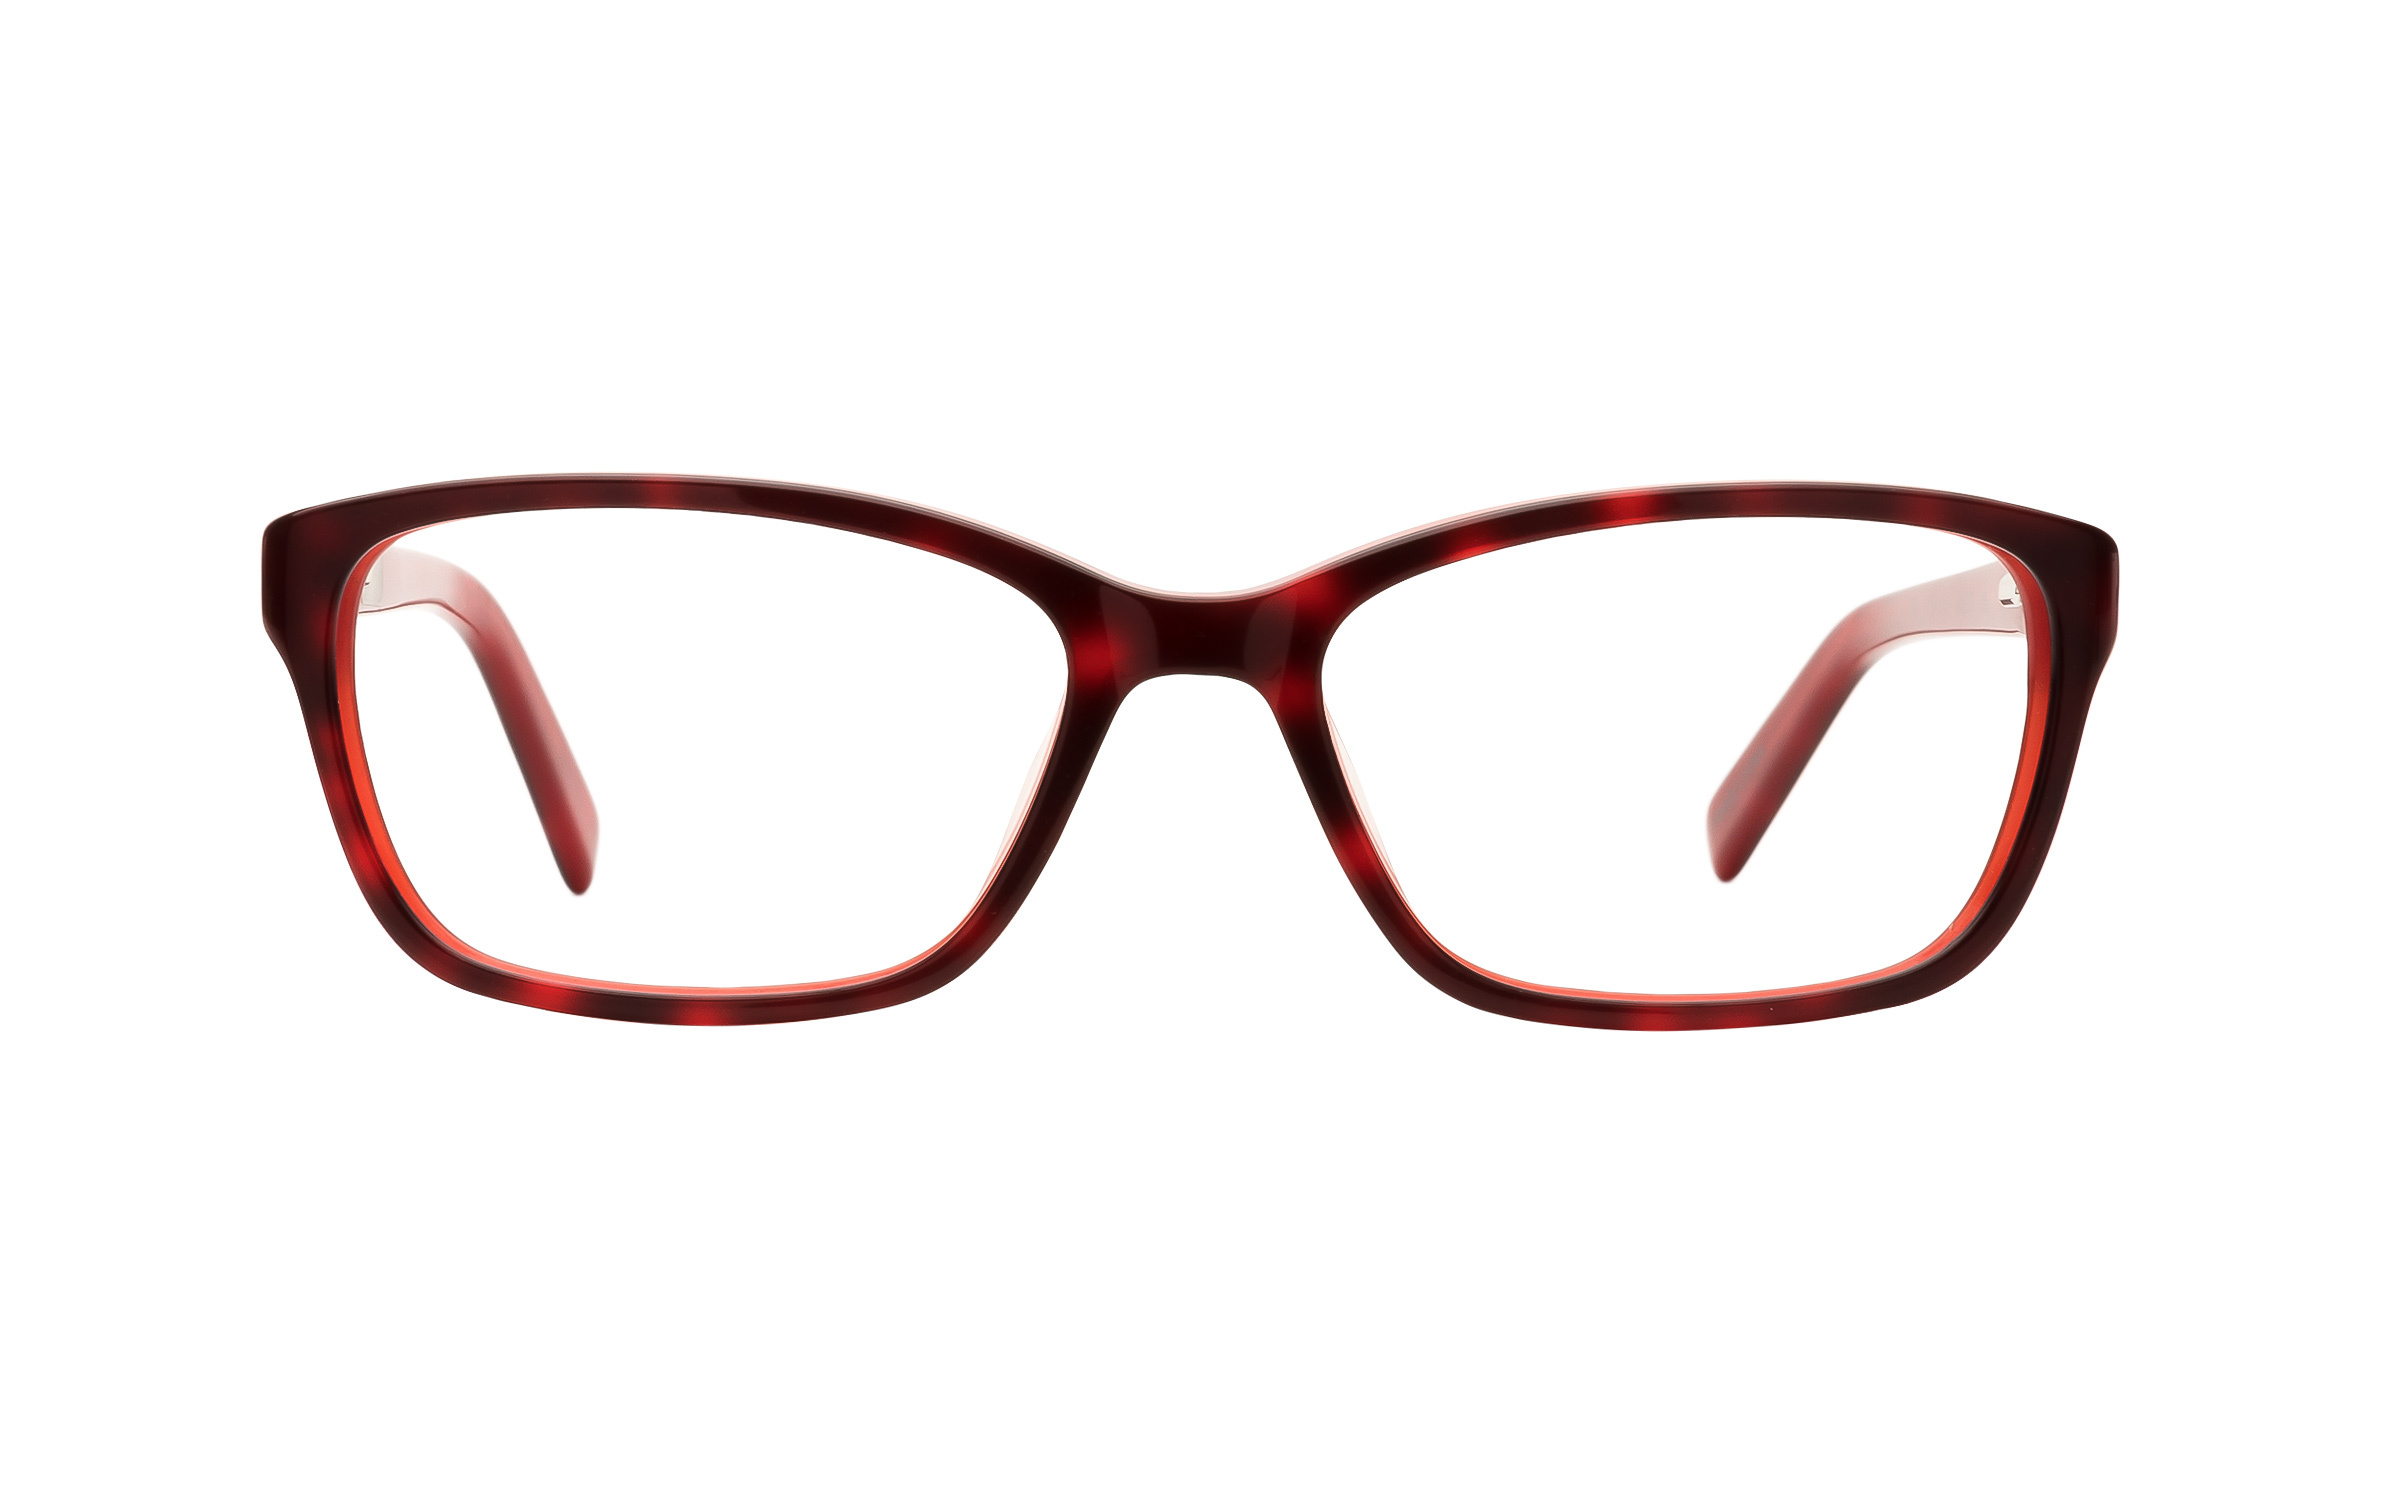 7 for All Mankind Women's Glasses Round Red/Tortoise Acetate Online Clearly